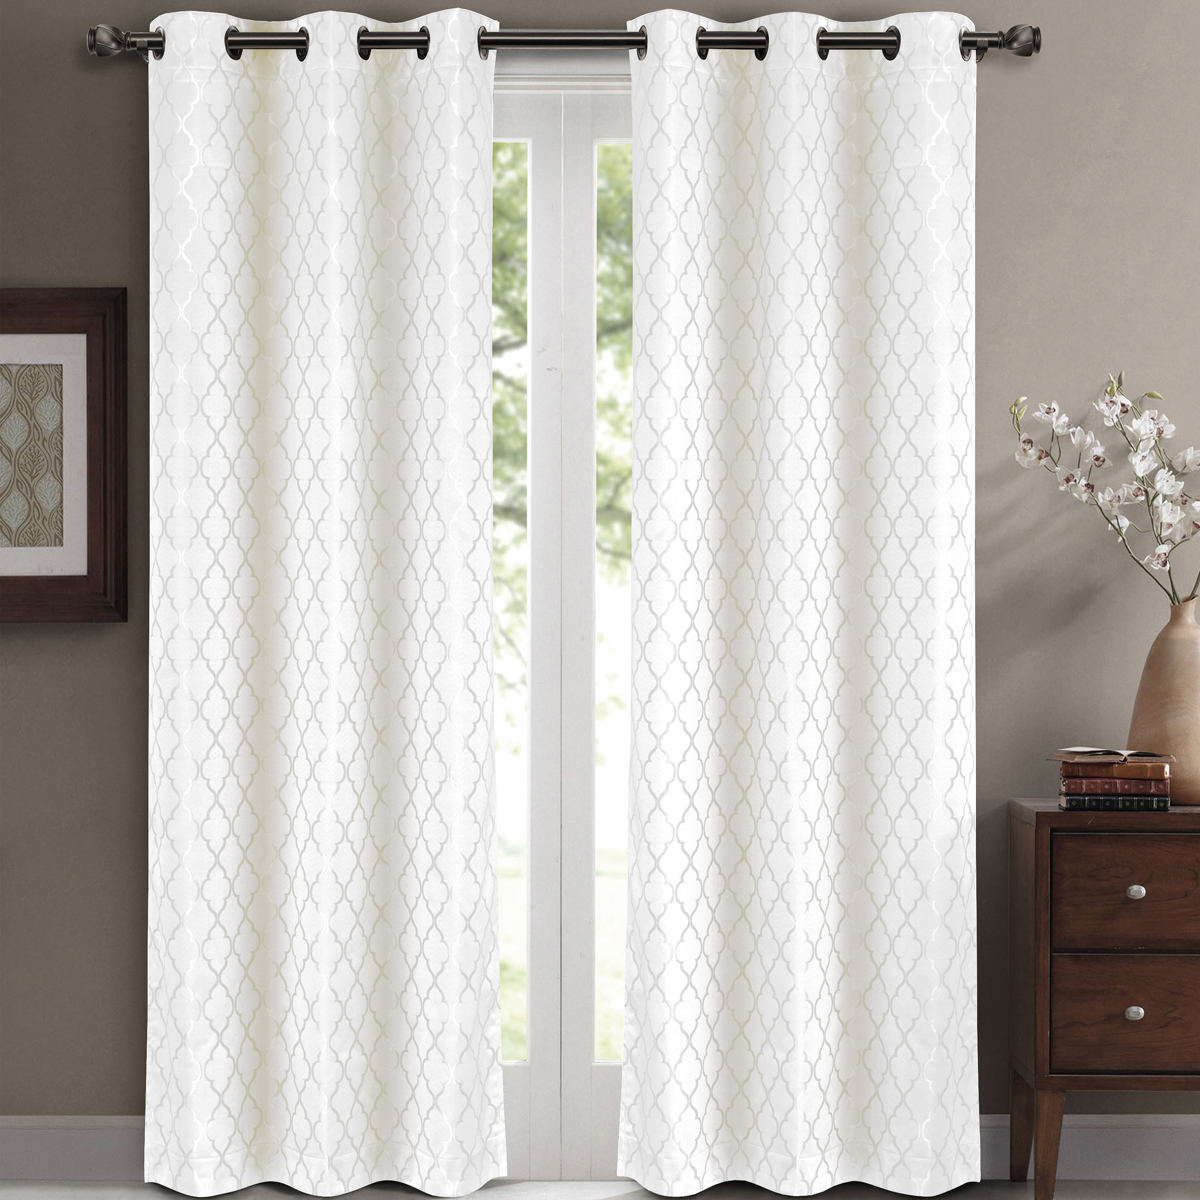 Pair Set Of 2 Willow Thermal Insulated Blackout Curtain Panels